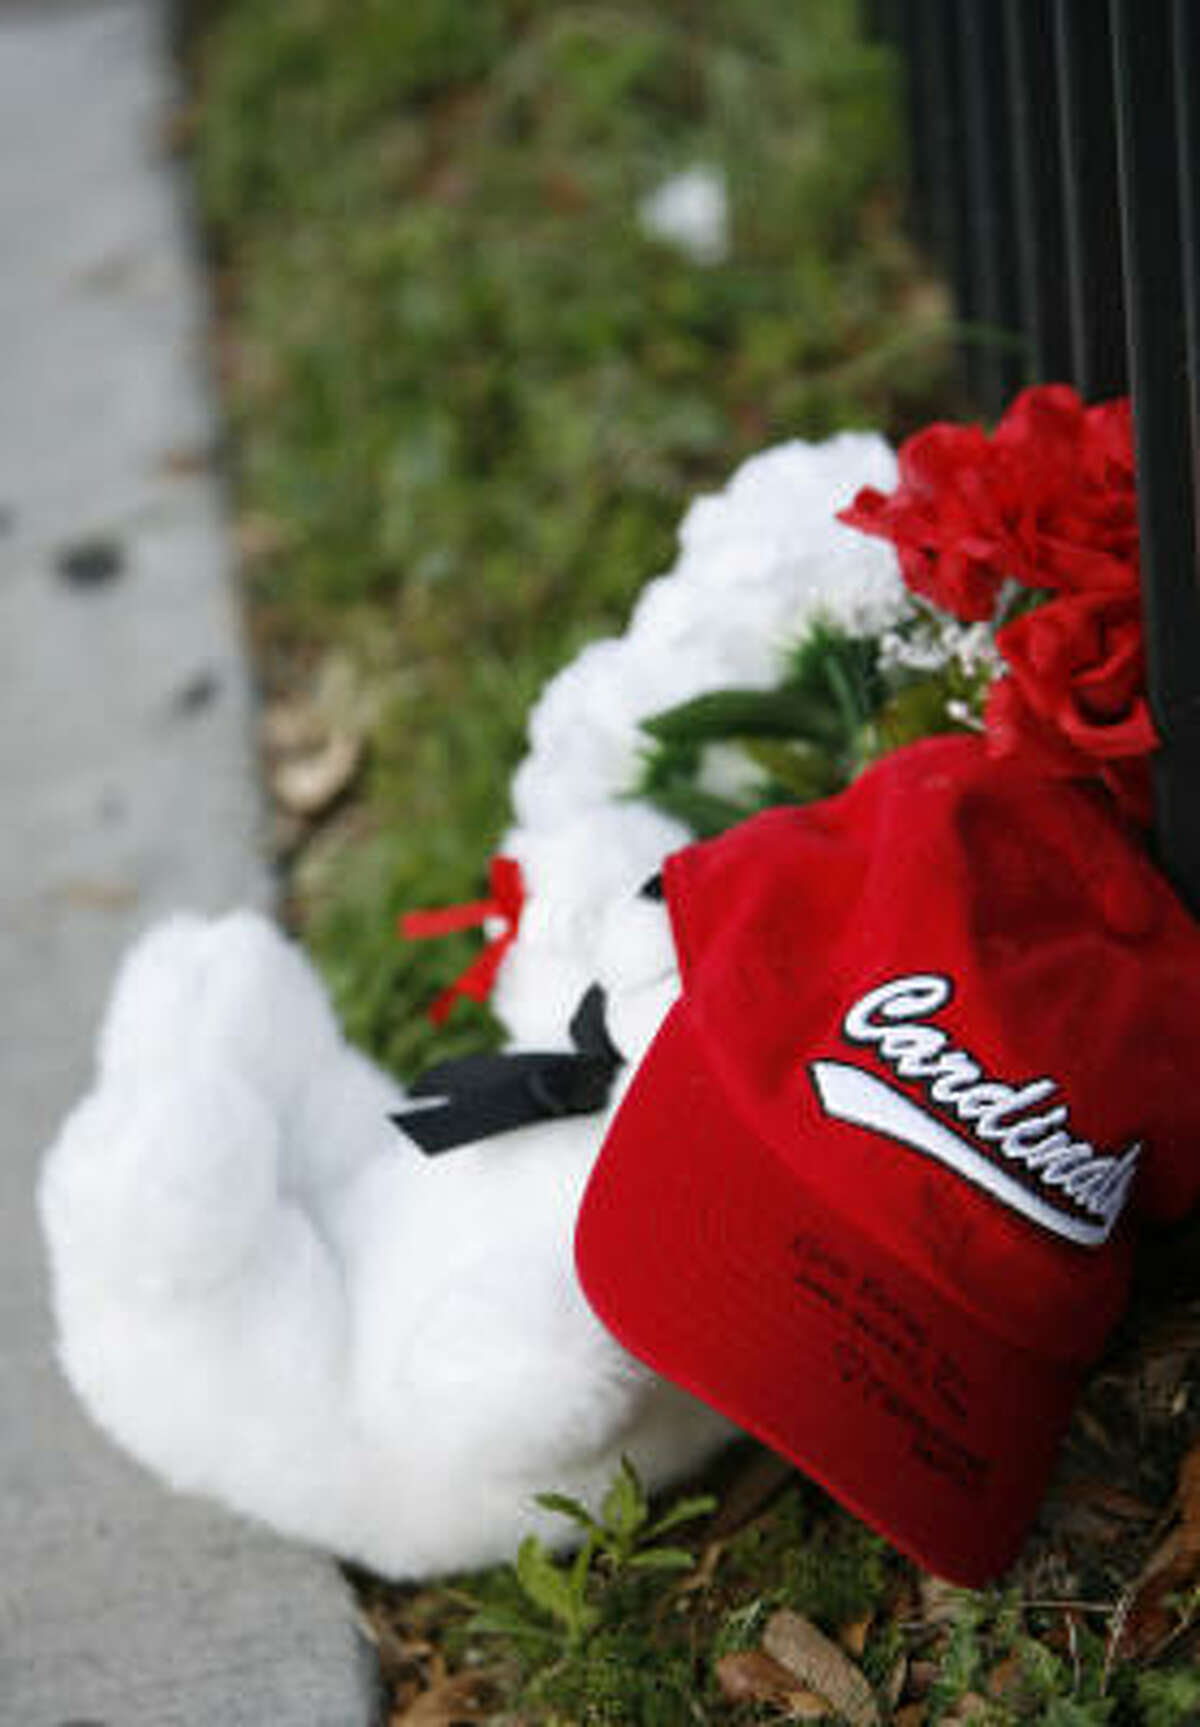 A teddy bear wearing a Bellaire High School baseball cap, sits against the fence, outside of the school, Monday, May 17, 2010, a day after Bellaire High School basketball standout Tobi Oyedeji died in a car accident early Sunday morning.